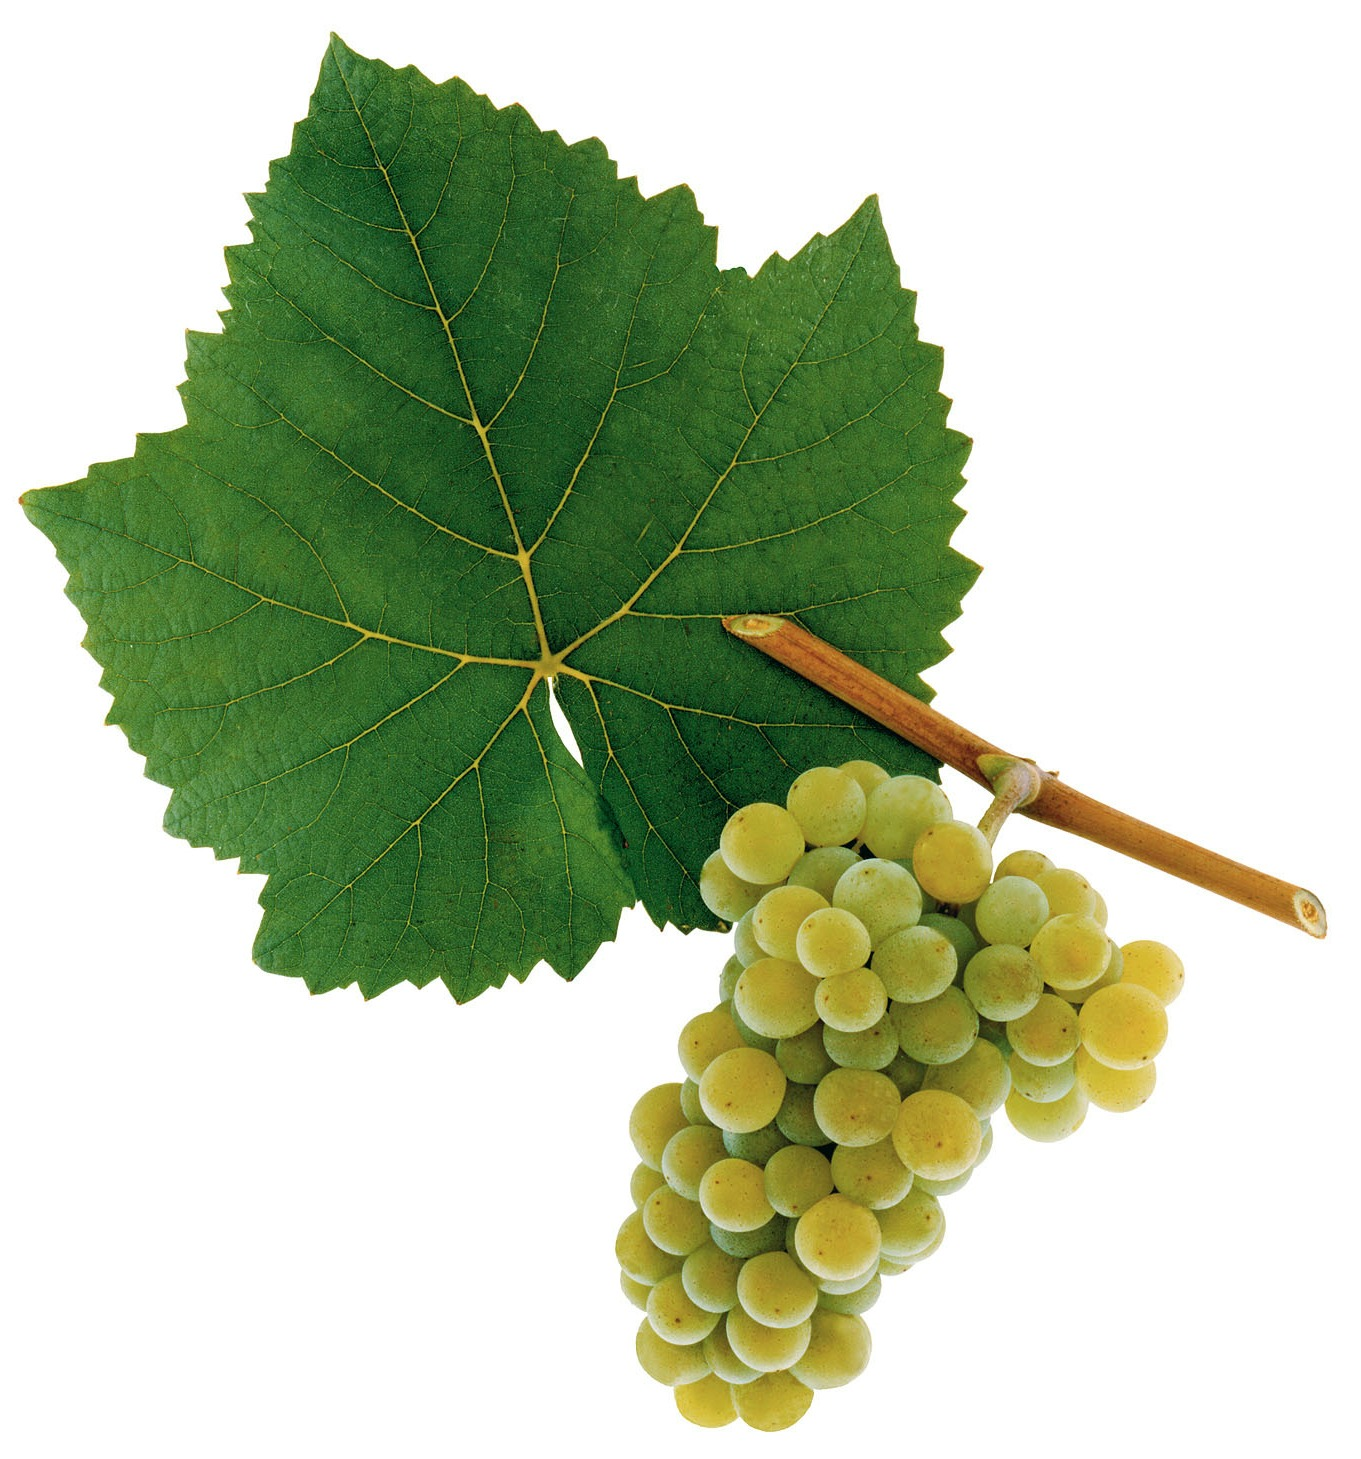 A picture shows grapes of the grape variety Weißburgunder